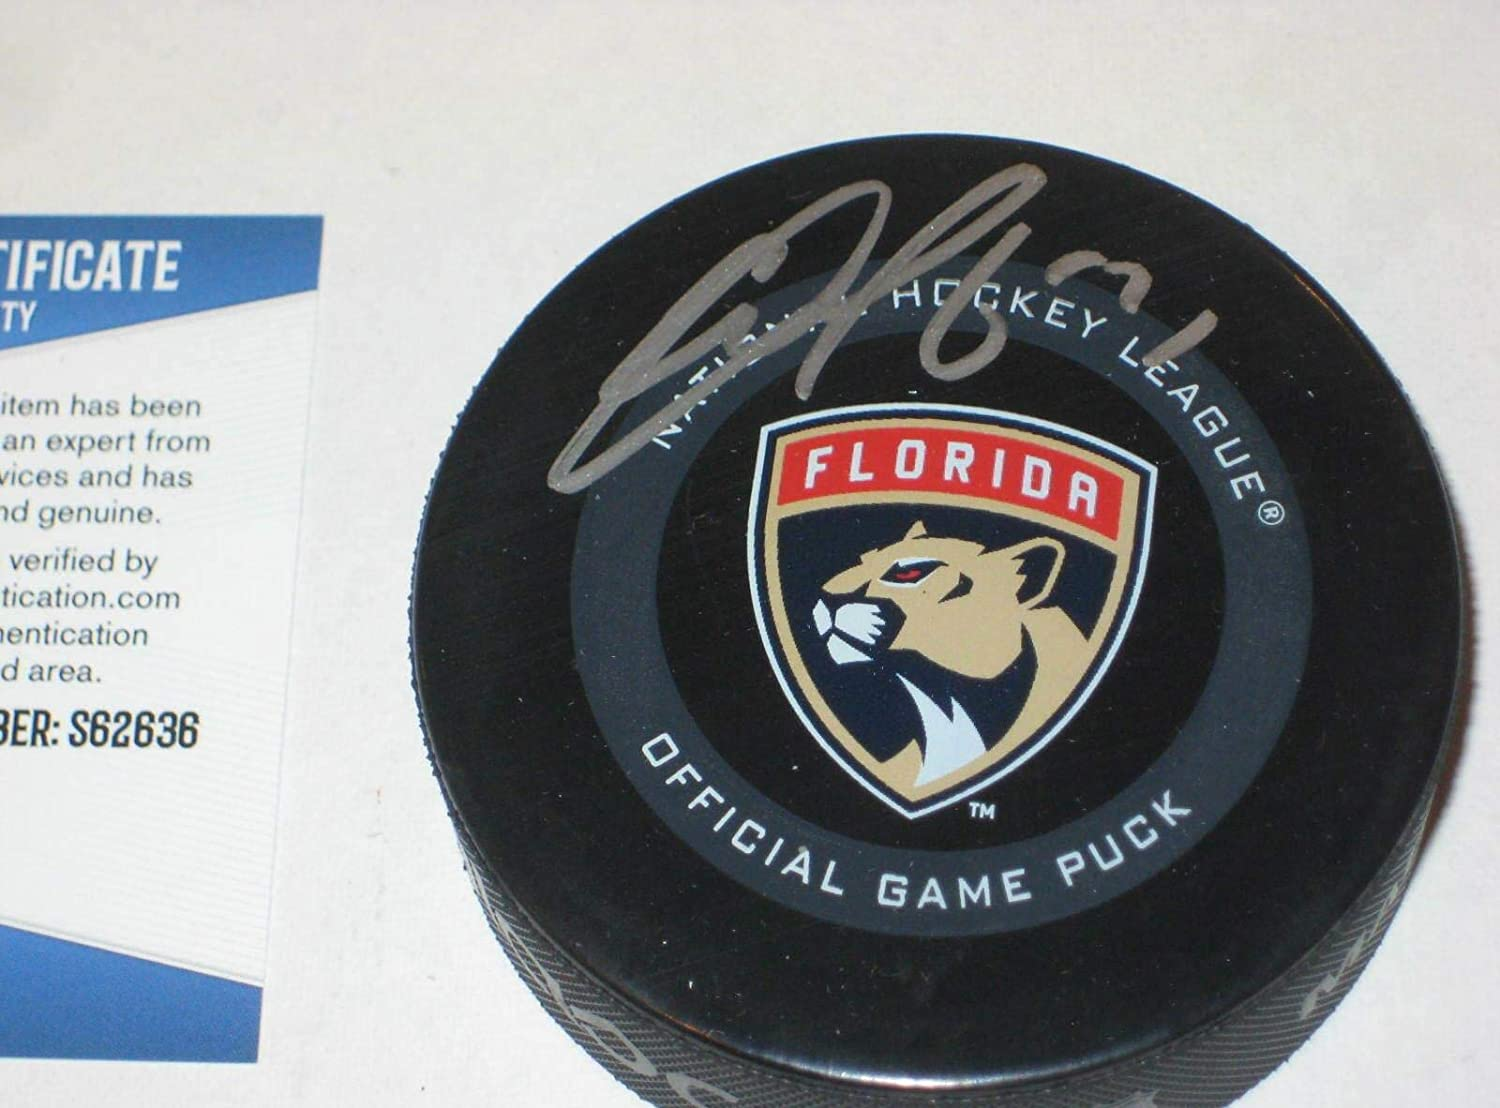 Evgenii Dadonov Signed Puck - Official w Beckett COA - Beckett Authentication - Autographed NHL Pucks